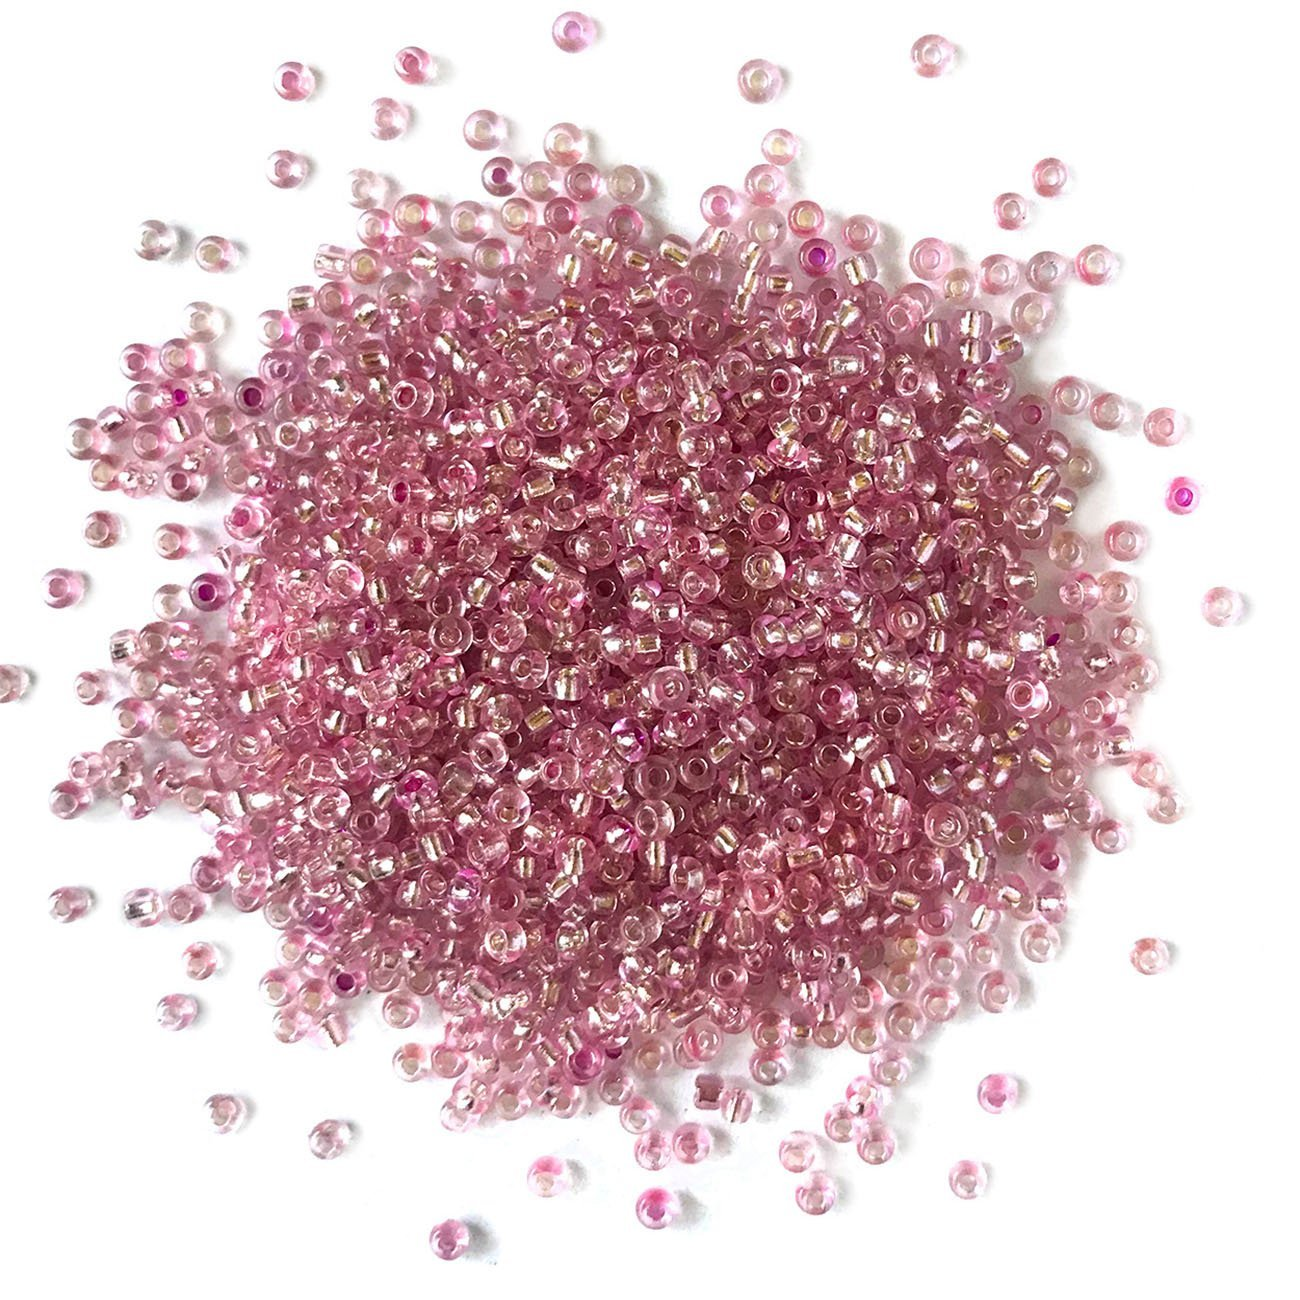 Light Rose Seed Beads - 11/0